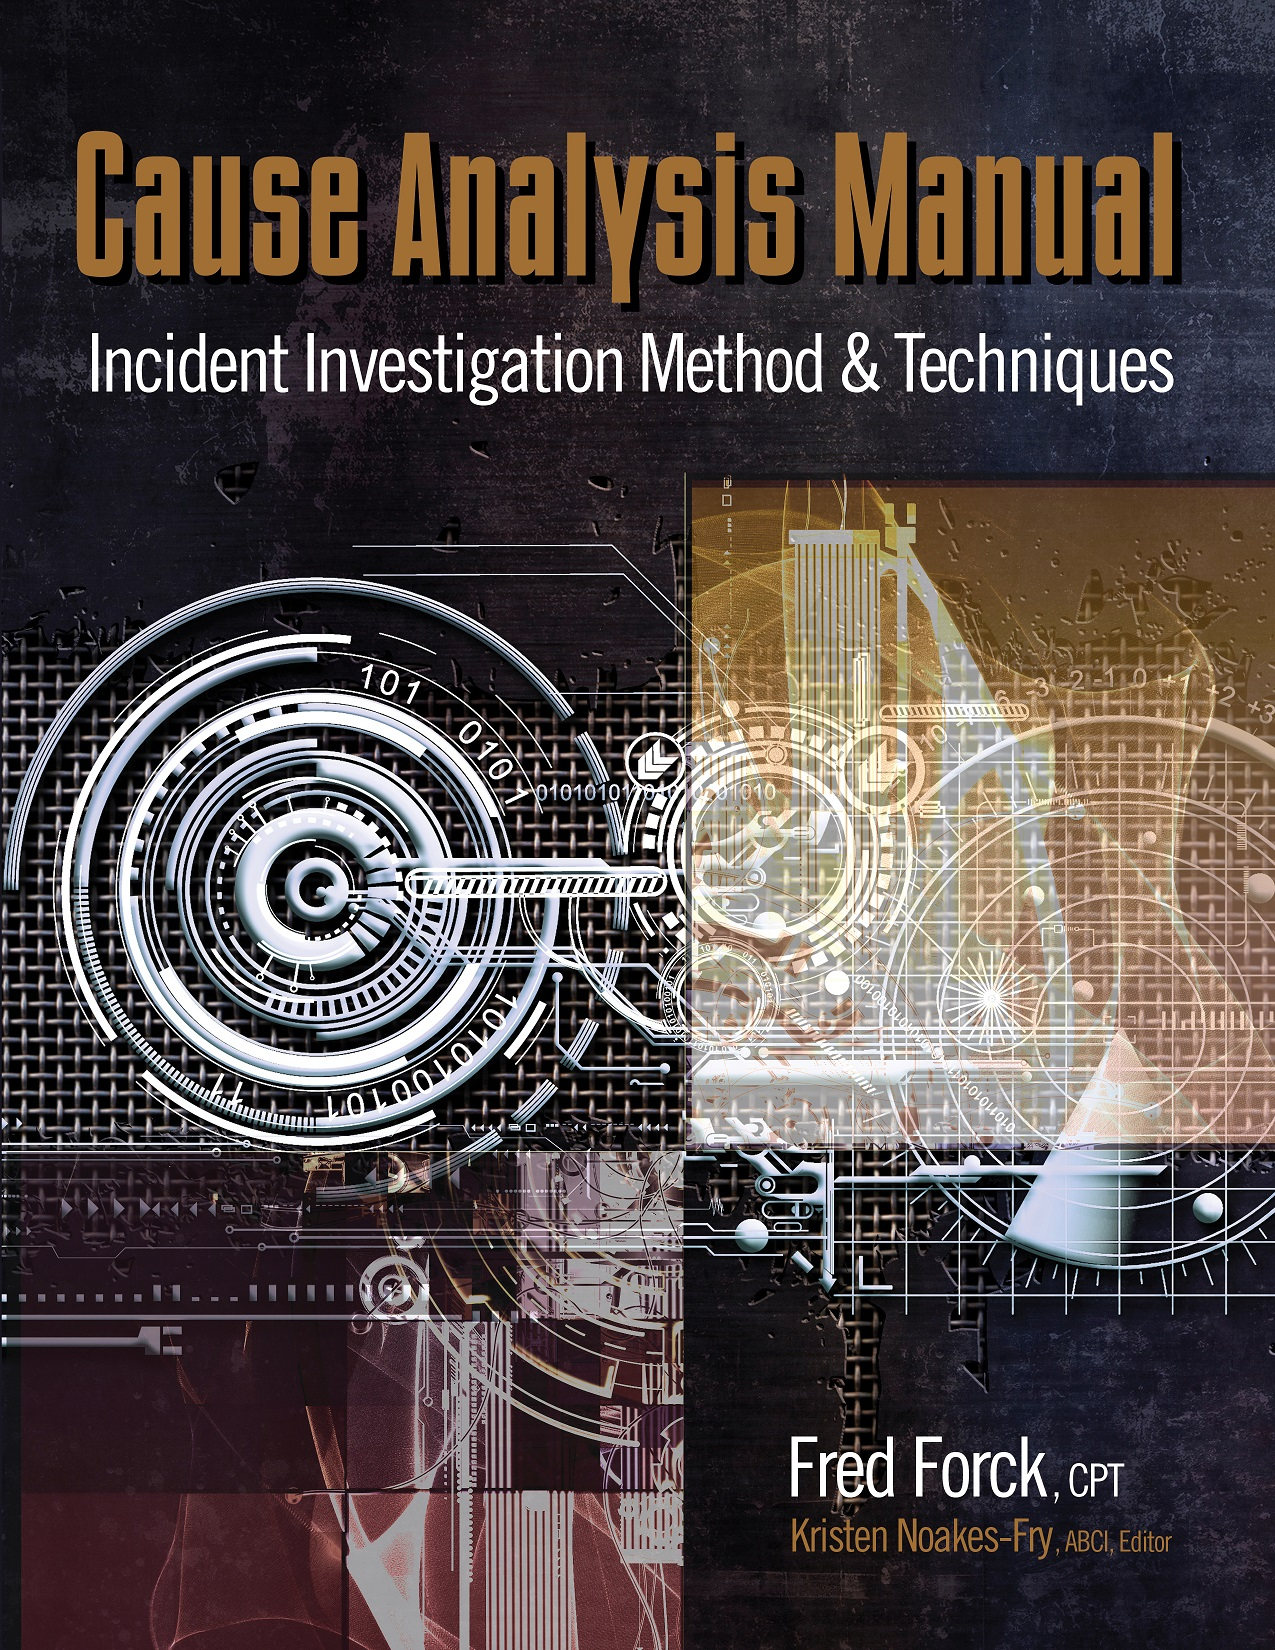 Root Cause Analysis Manual Guide